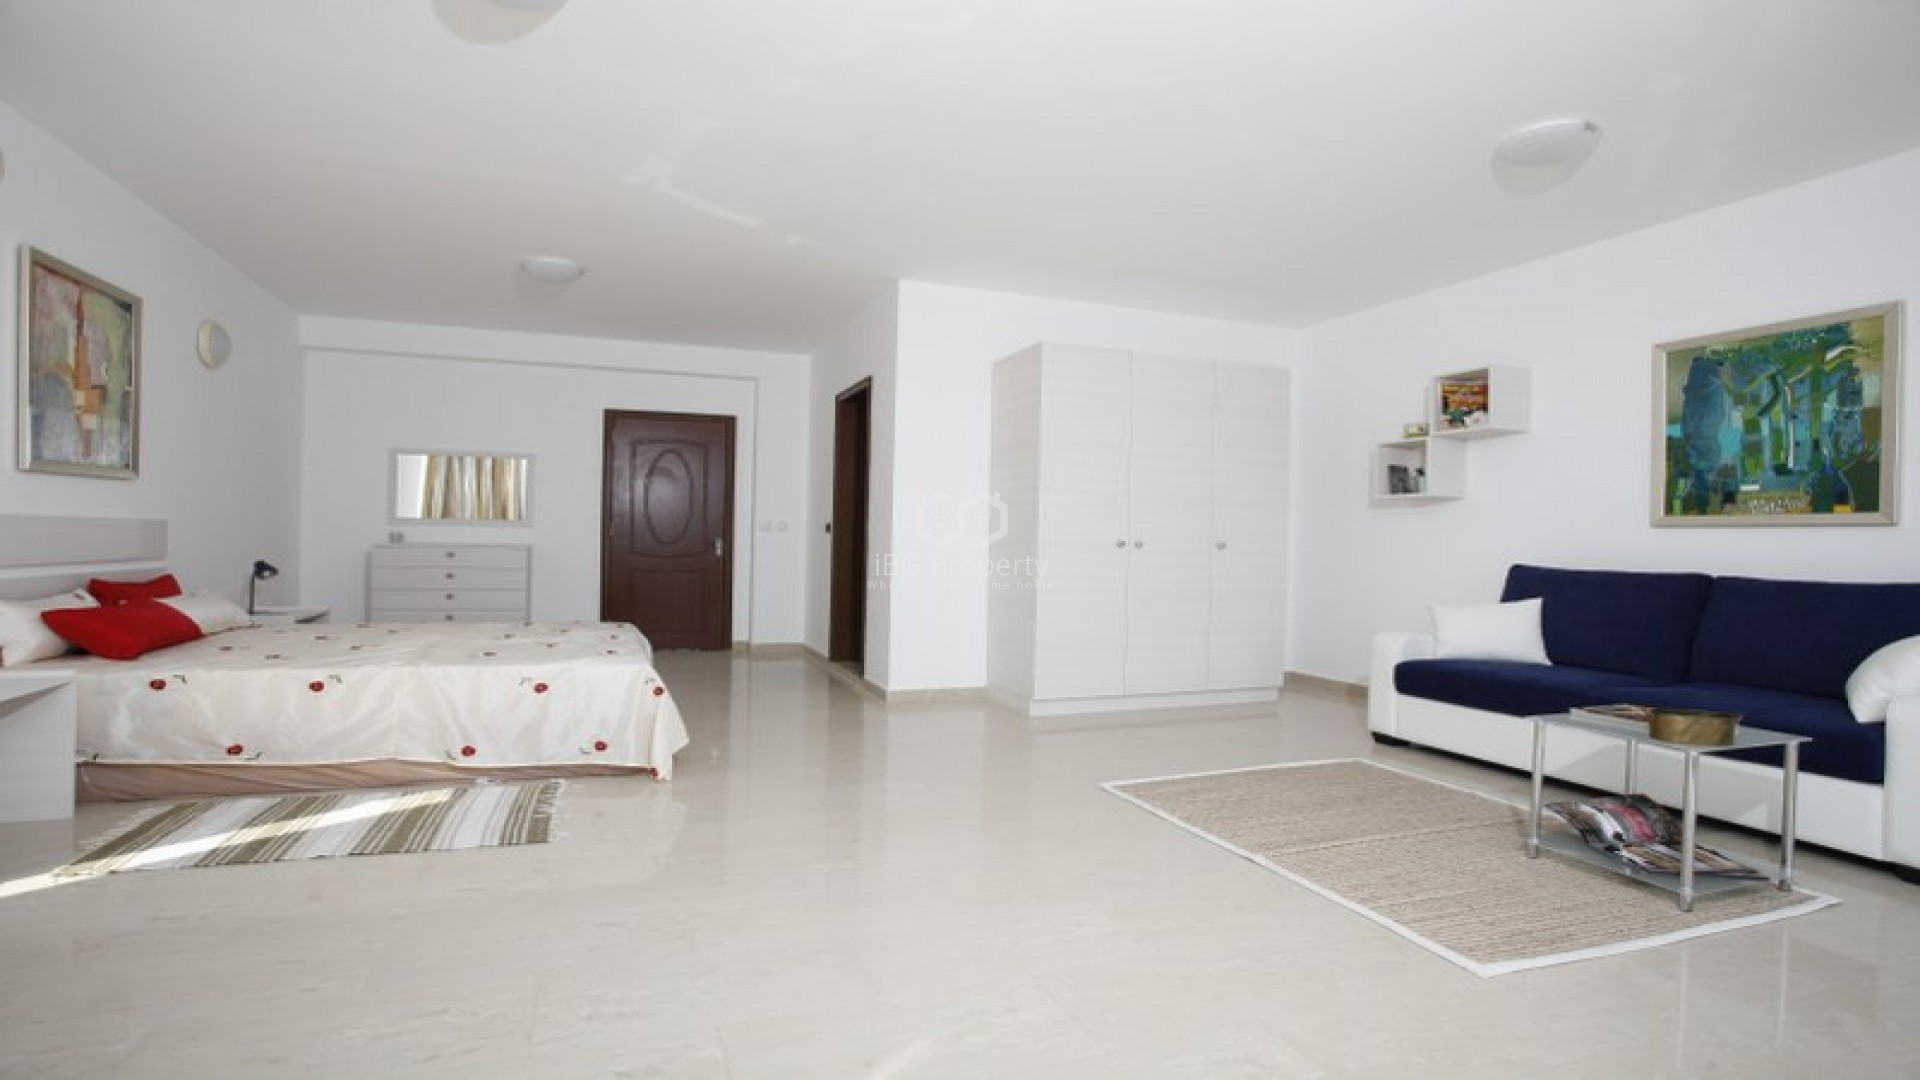 One bedroom apartment Byala 77 m2